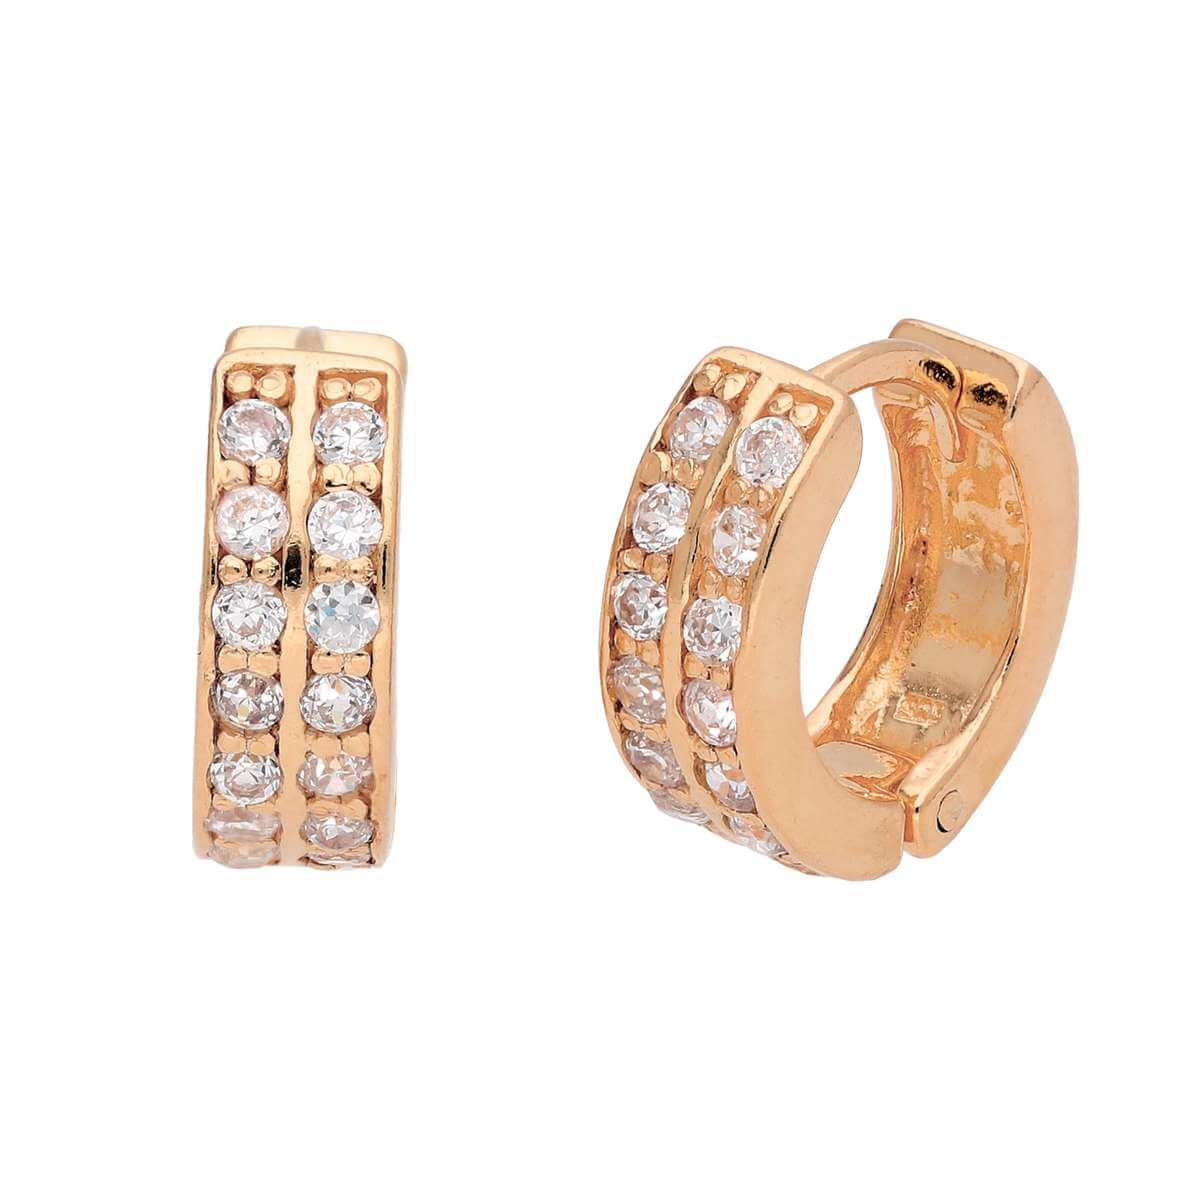 Rose Gold Plated Sterling Silver CZ Huggie Hoop Earrings